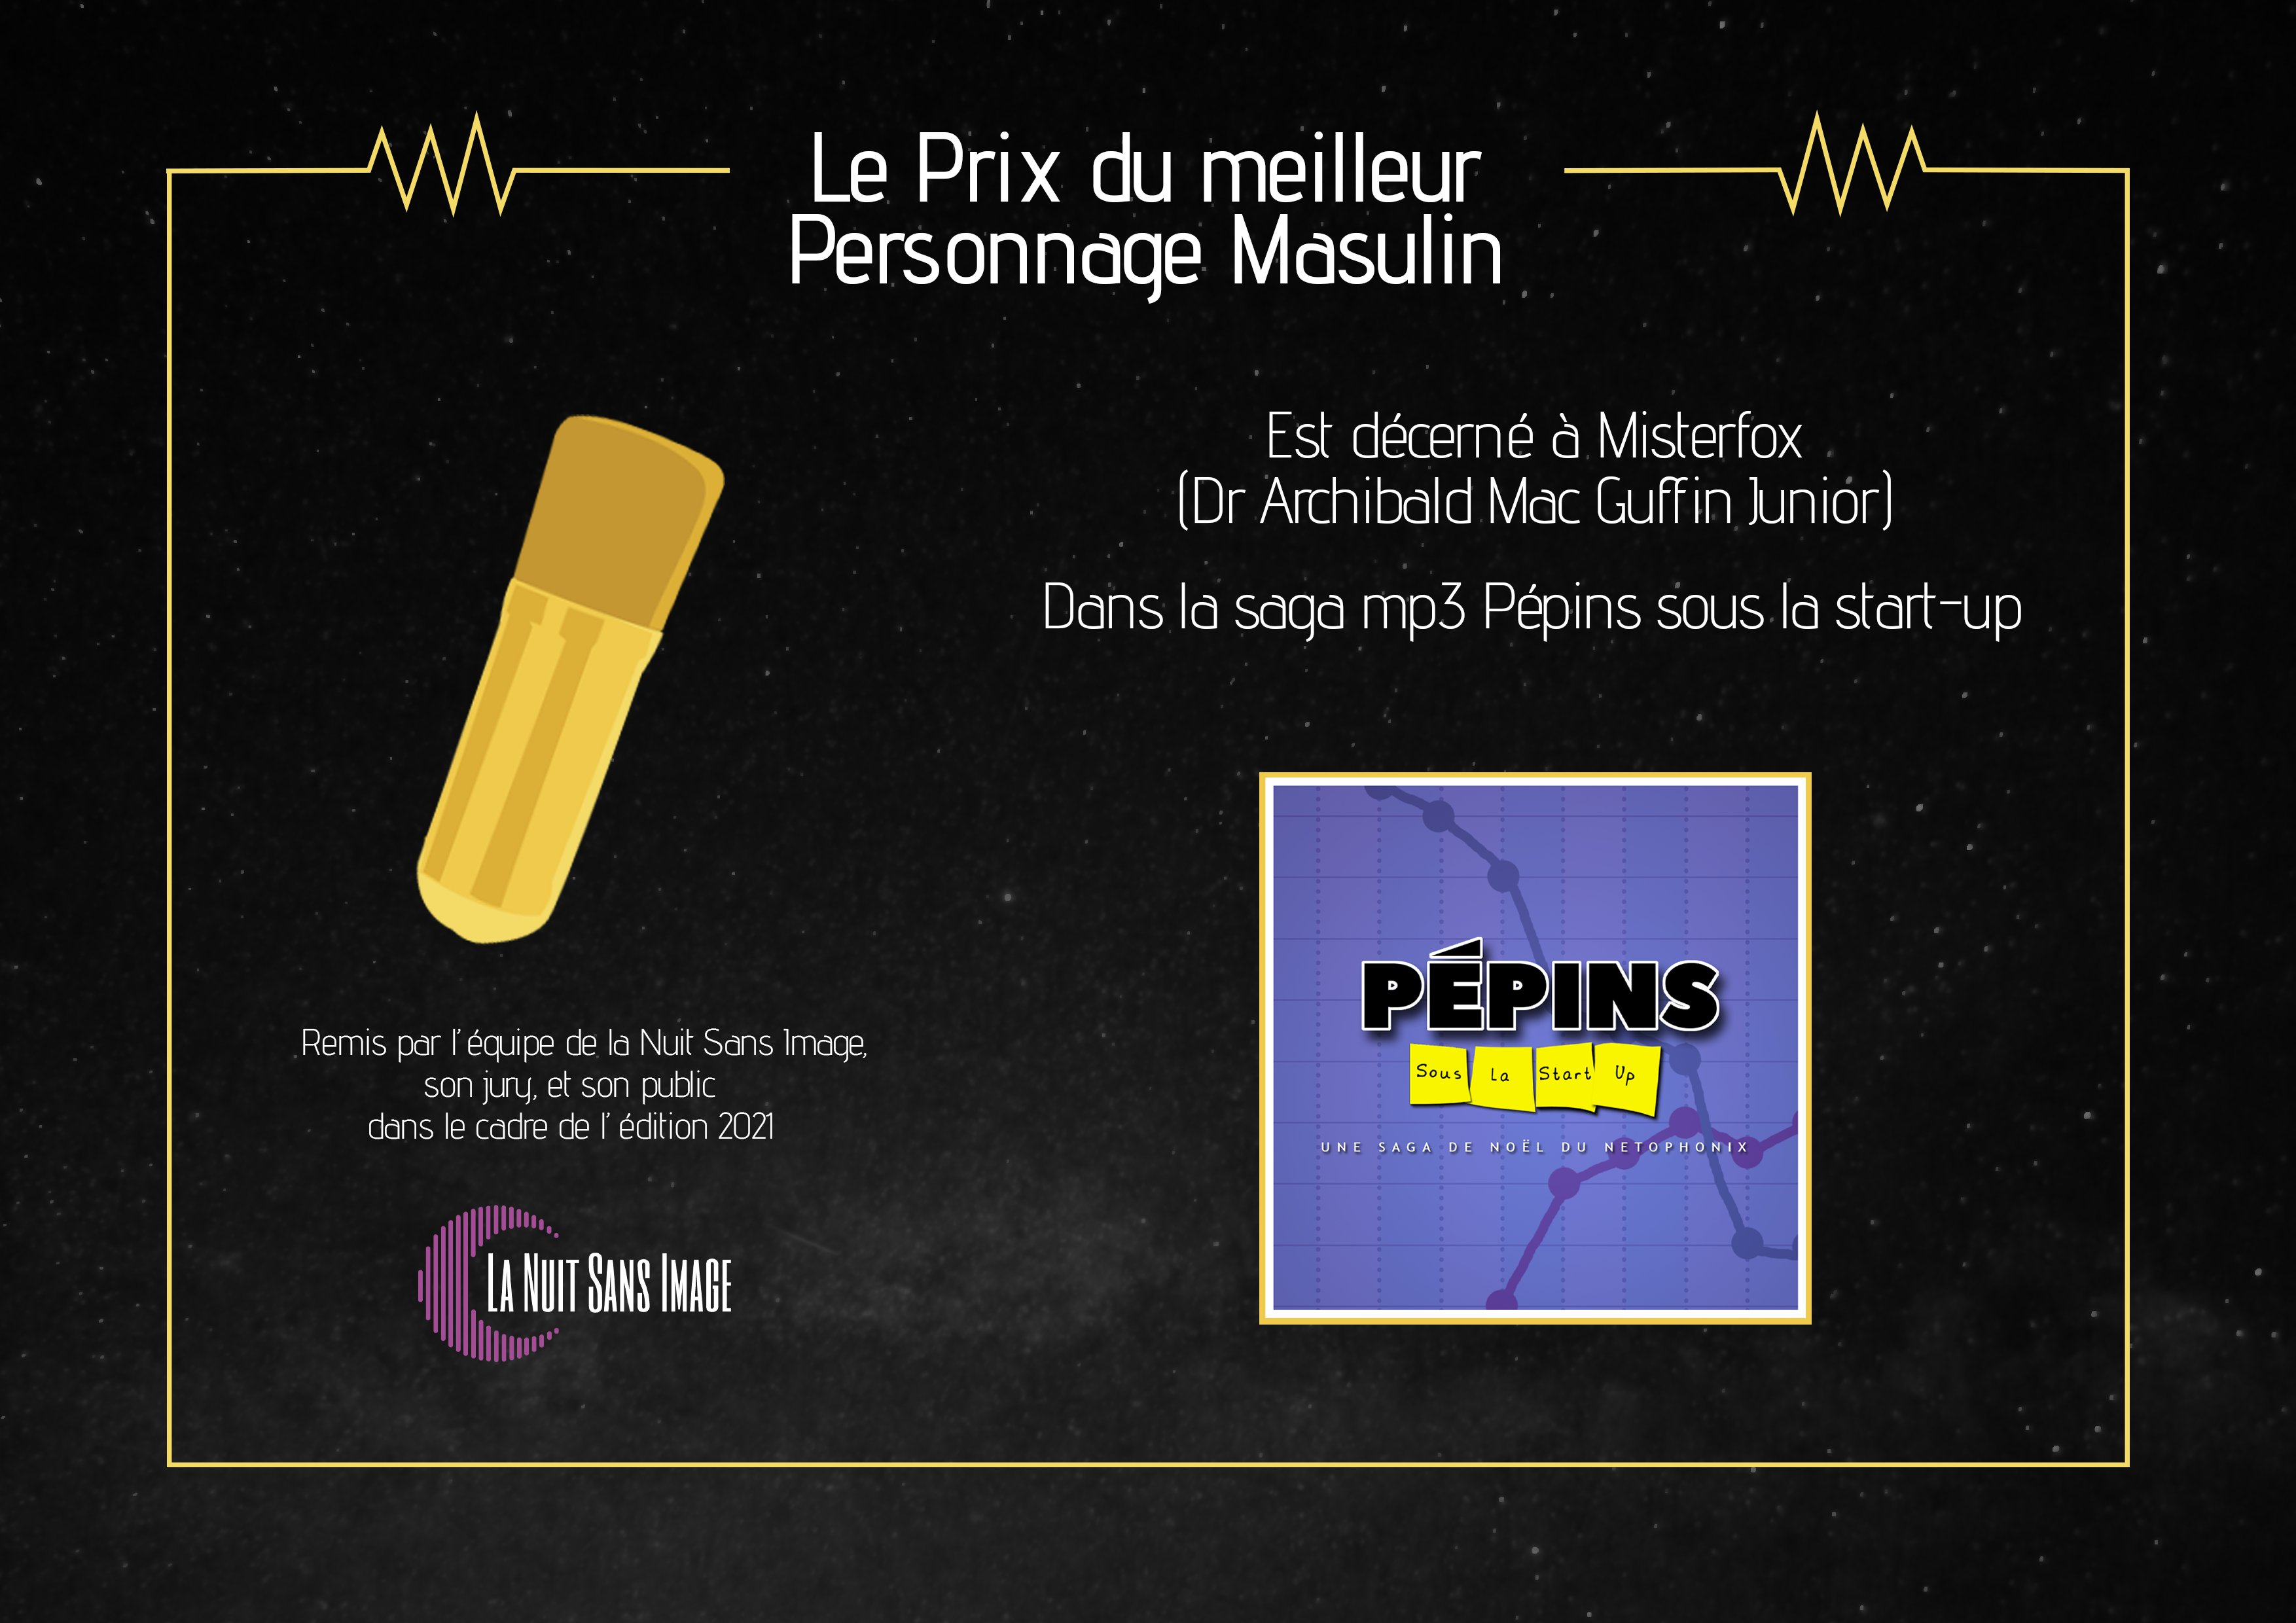 Micro d'or pour